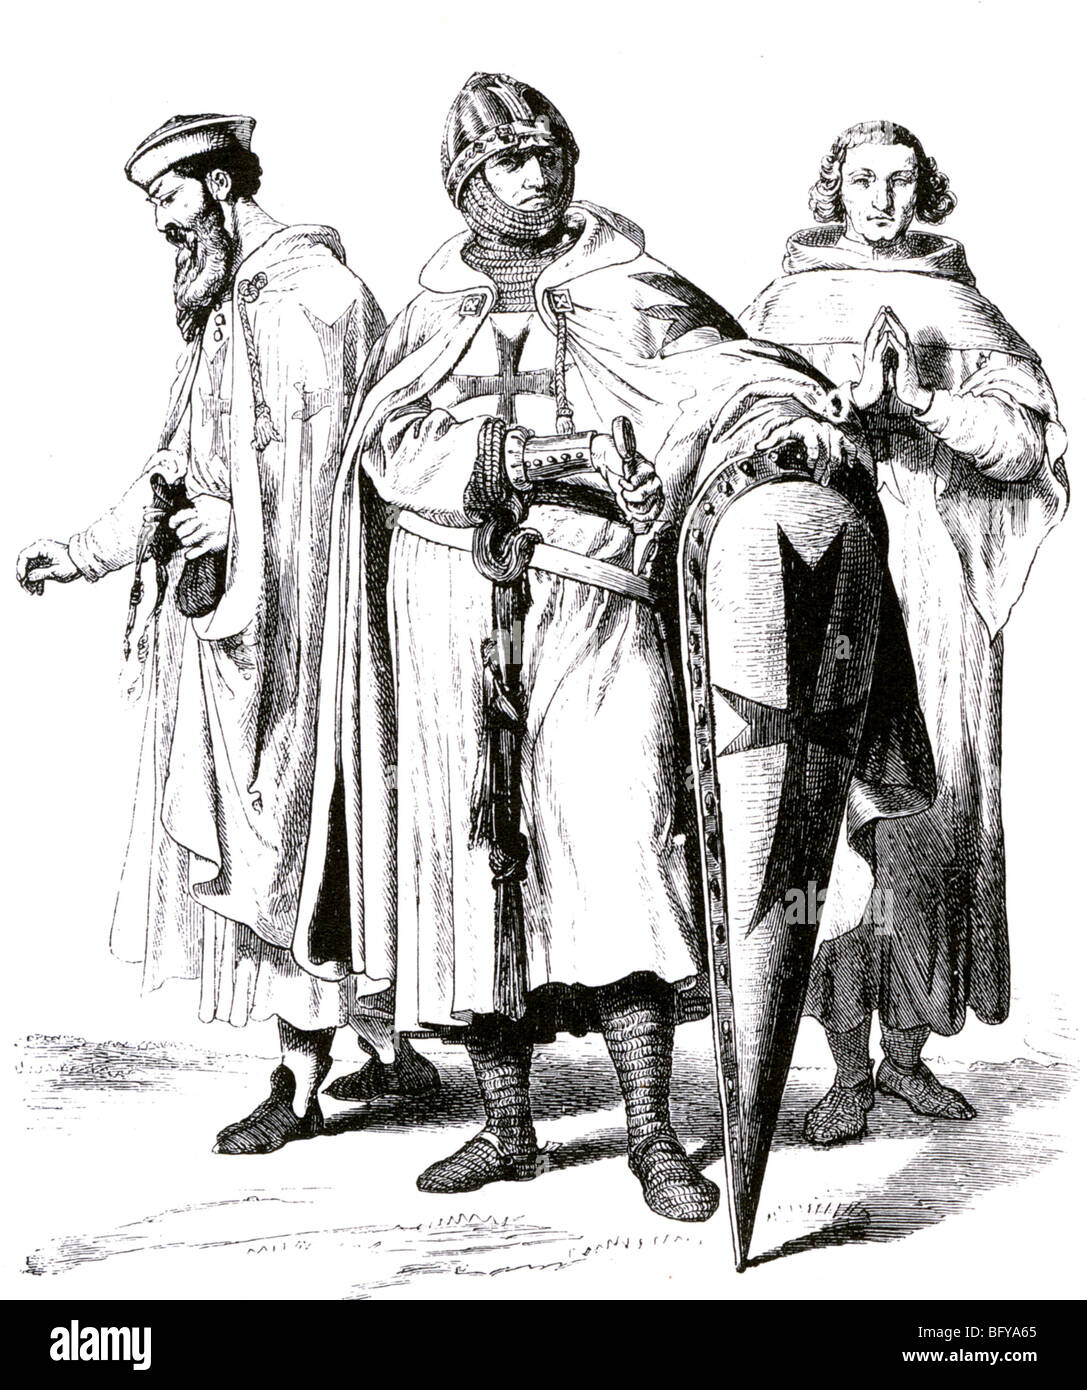 KNIGHTS TEMPLAR as shown in a Victorian illustration - Stock Image